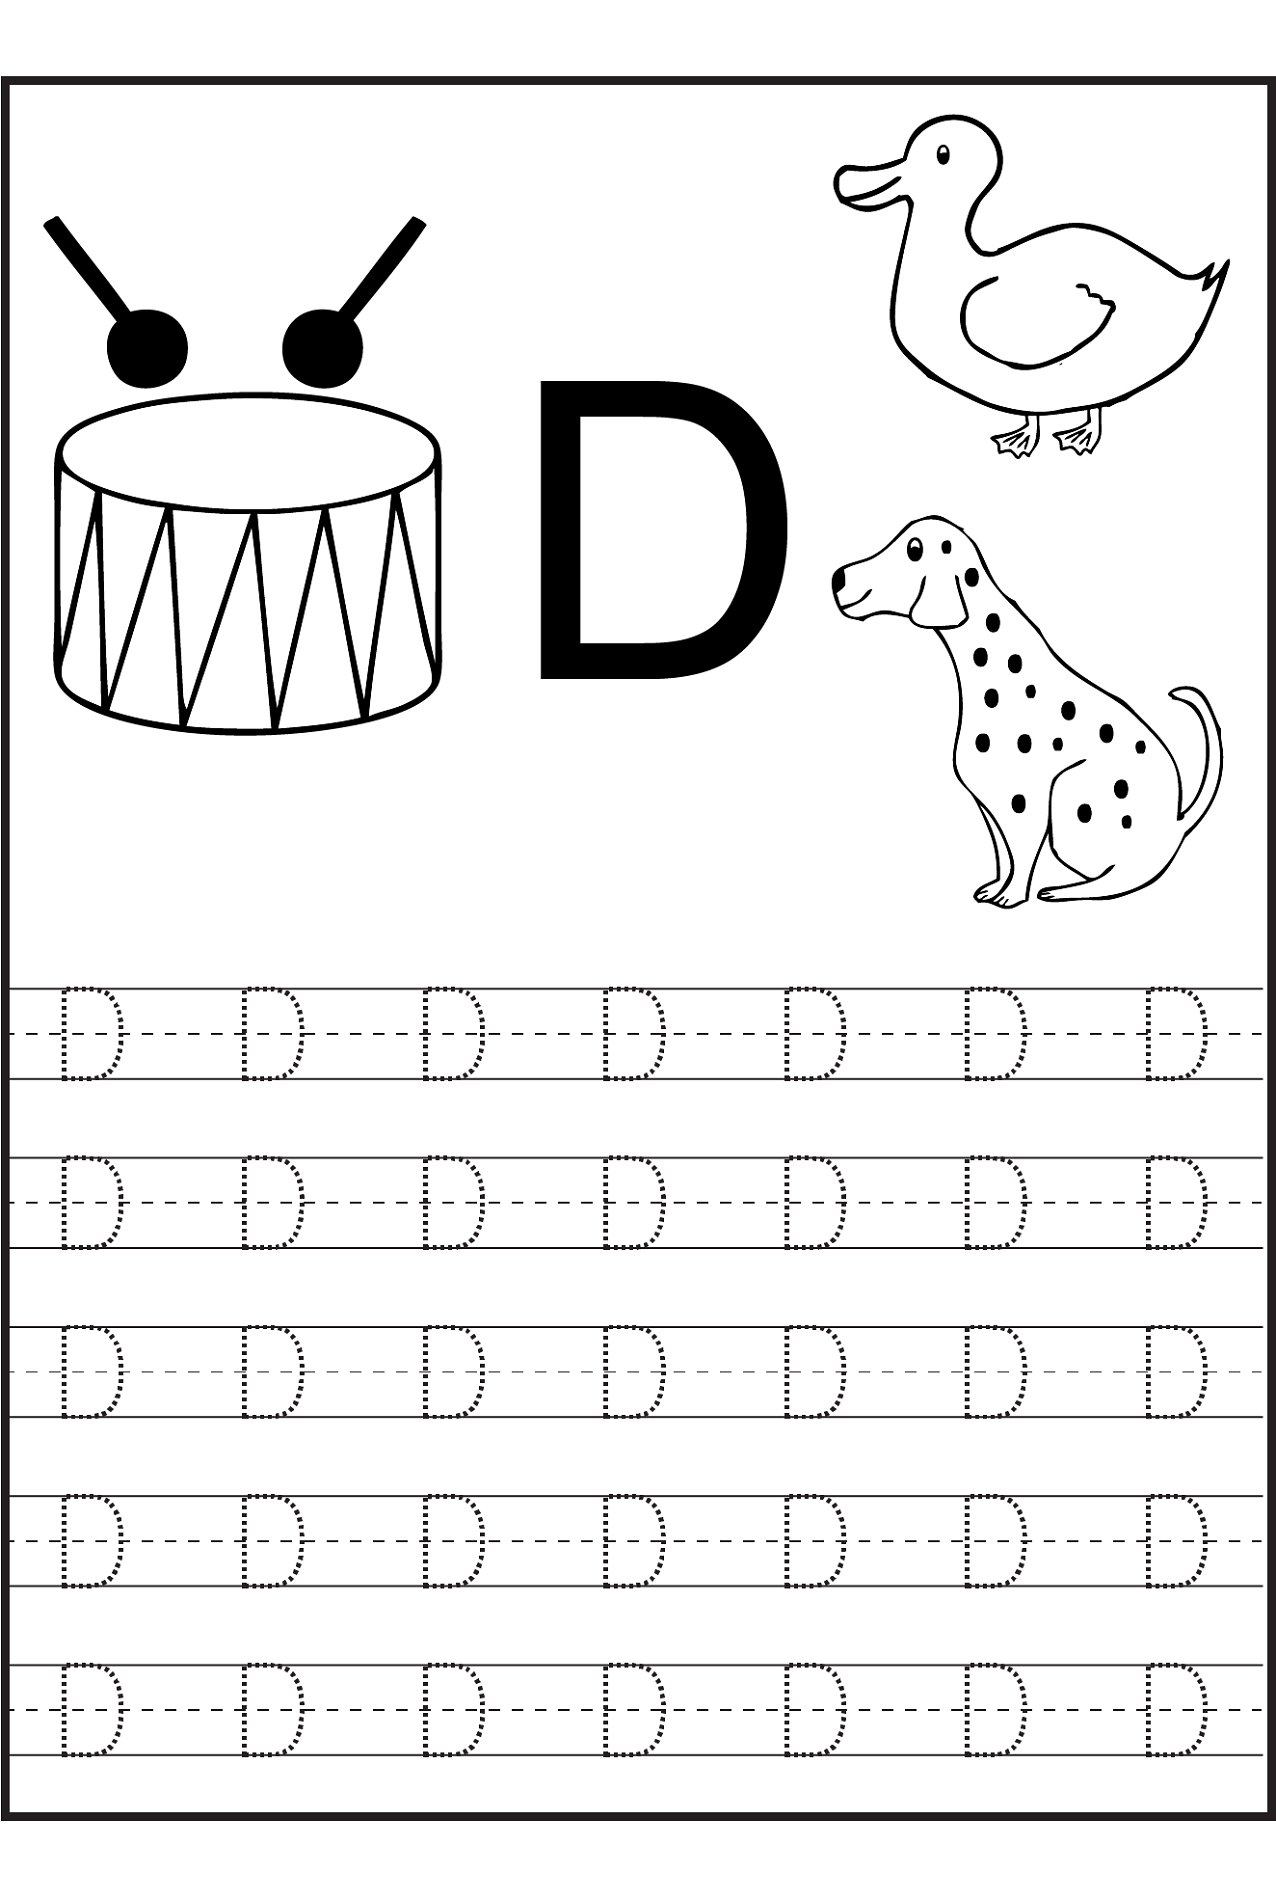 Traceable Letters Free | Activity Shelter In 2020 | Alphabet